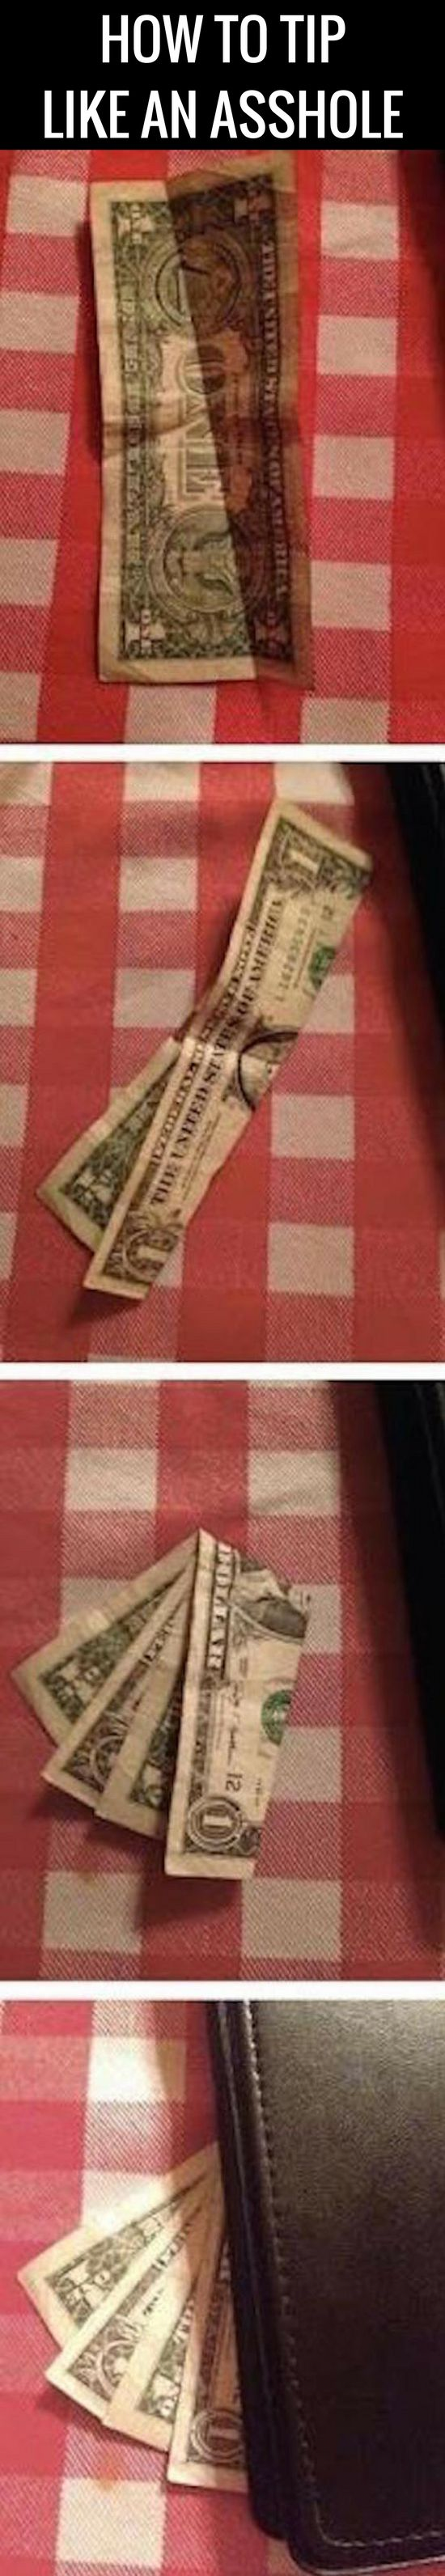 The only reason I would EVER do this is if the waiter/waitress was extremely disrespectful to me. Otherwise, it's just rude